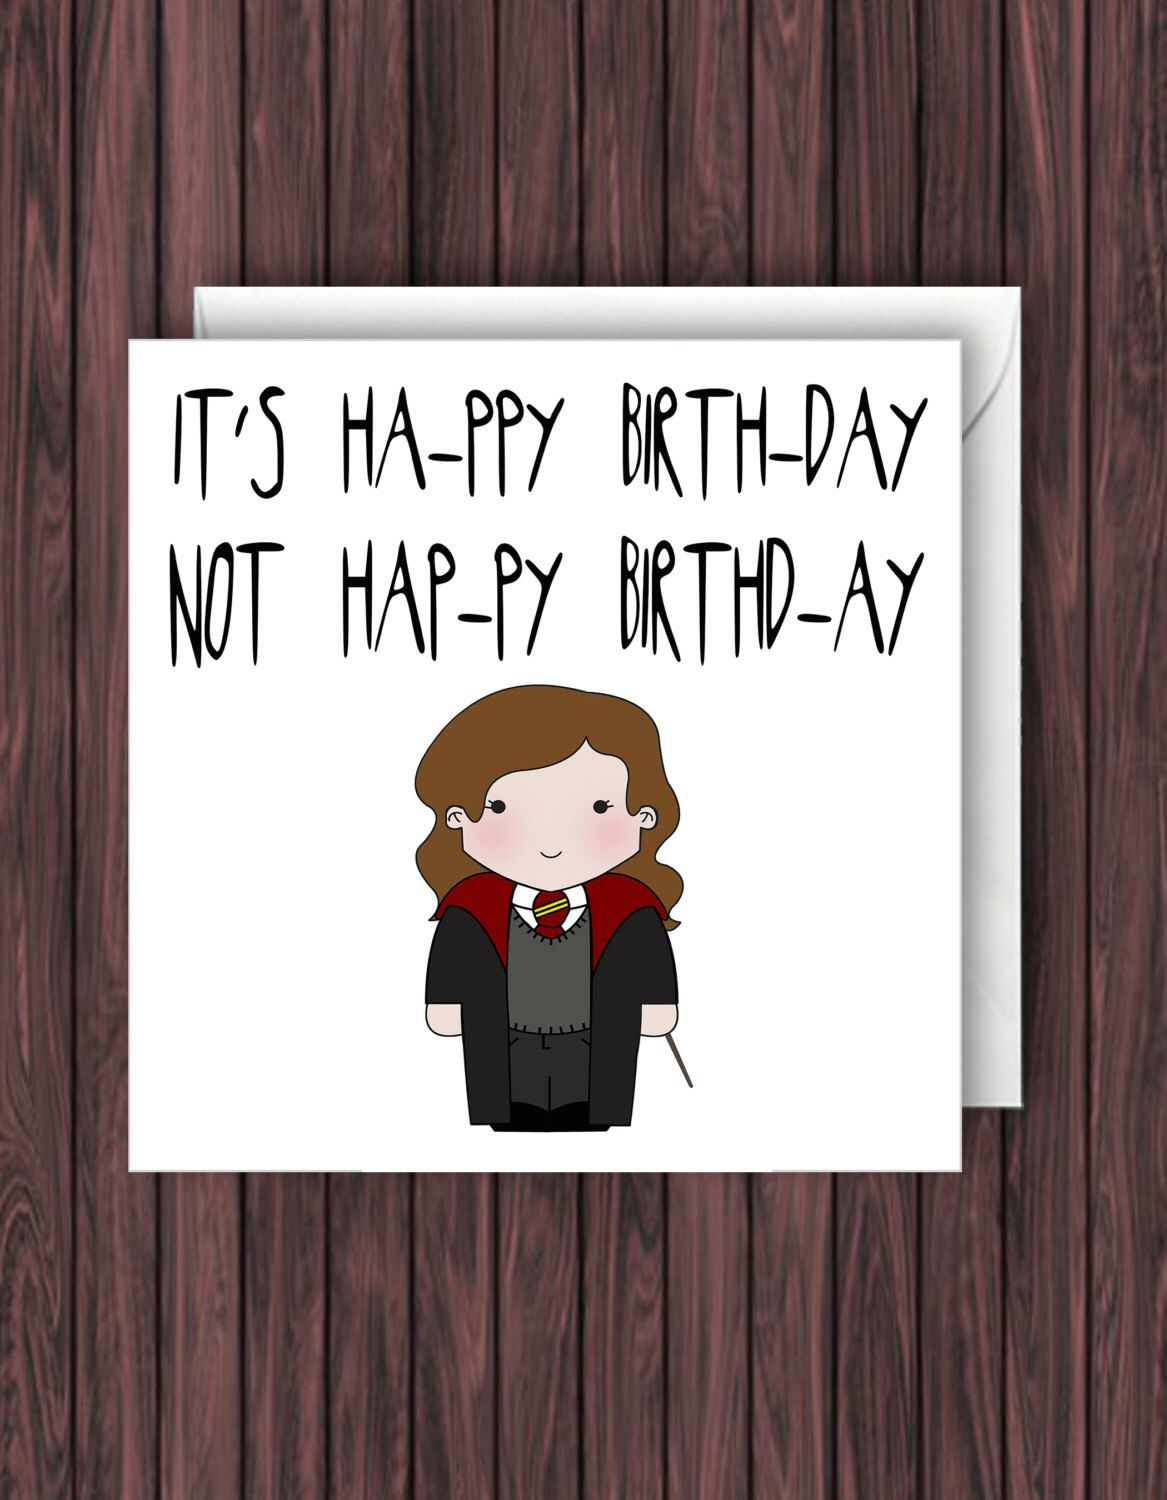 Pin by Happy Birhday Cake on +101 Birthday Cards | Pinterest | Harry ...